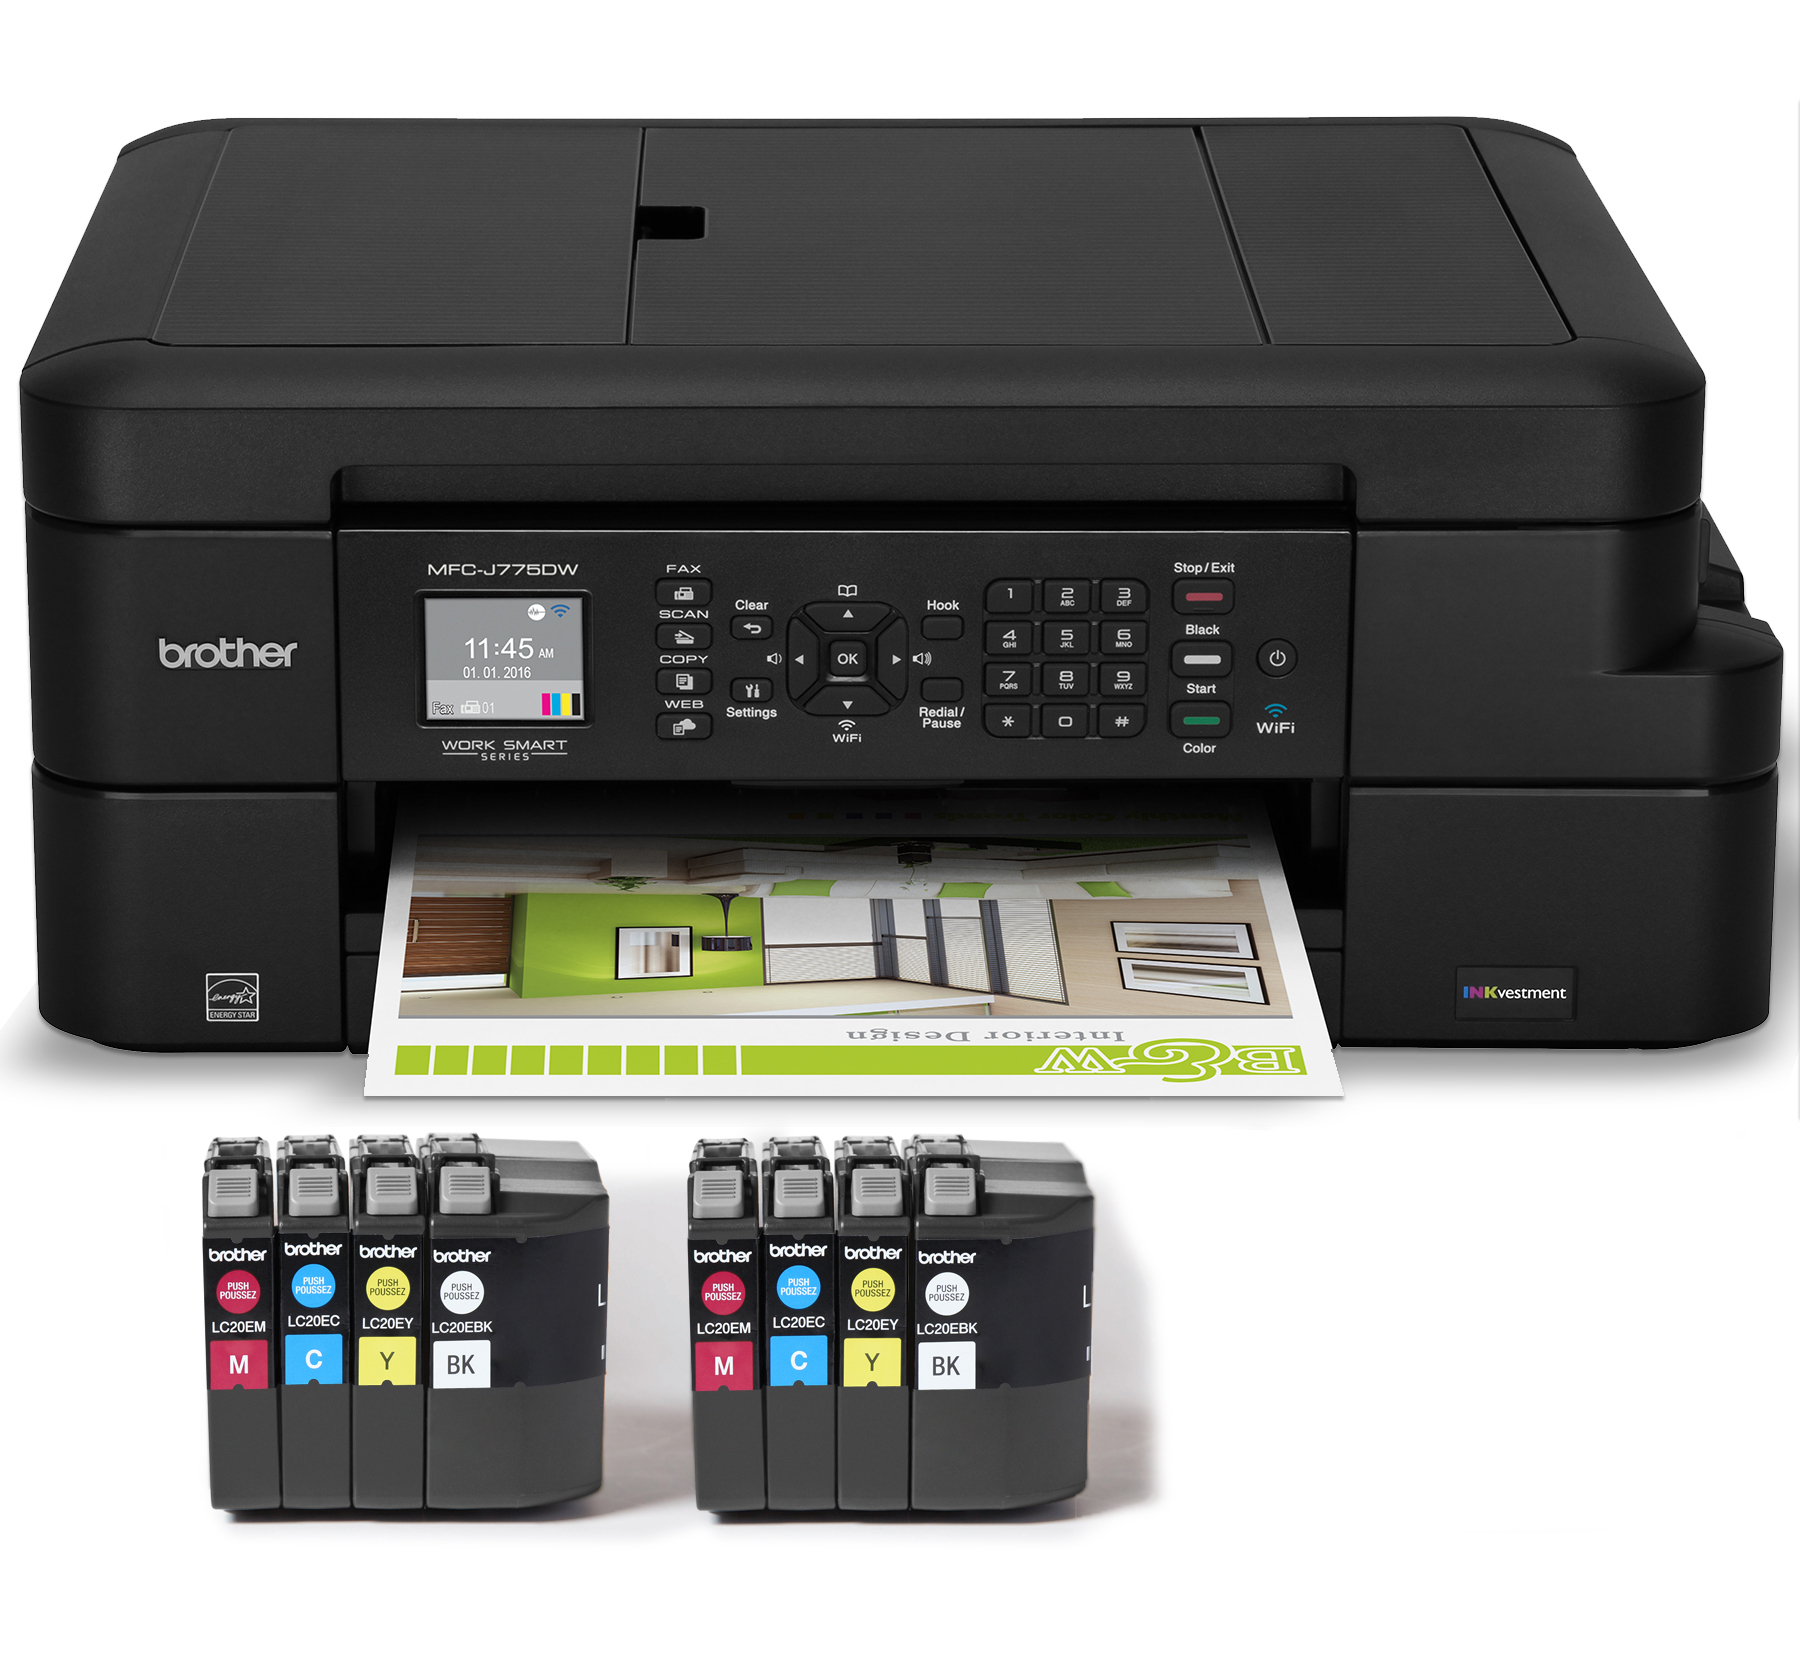 Brother MFC-J775DWL INKvestment Compact Color Inkjet All-in-One Multifunction Printer with up to 2 Years of Ink (8 INKvestment Cartridges Included)